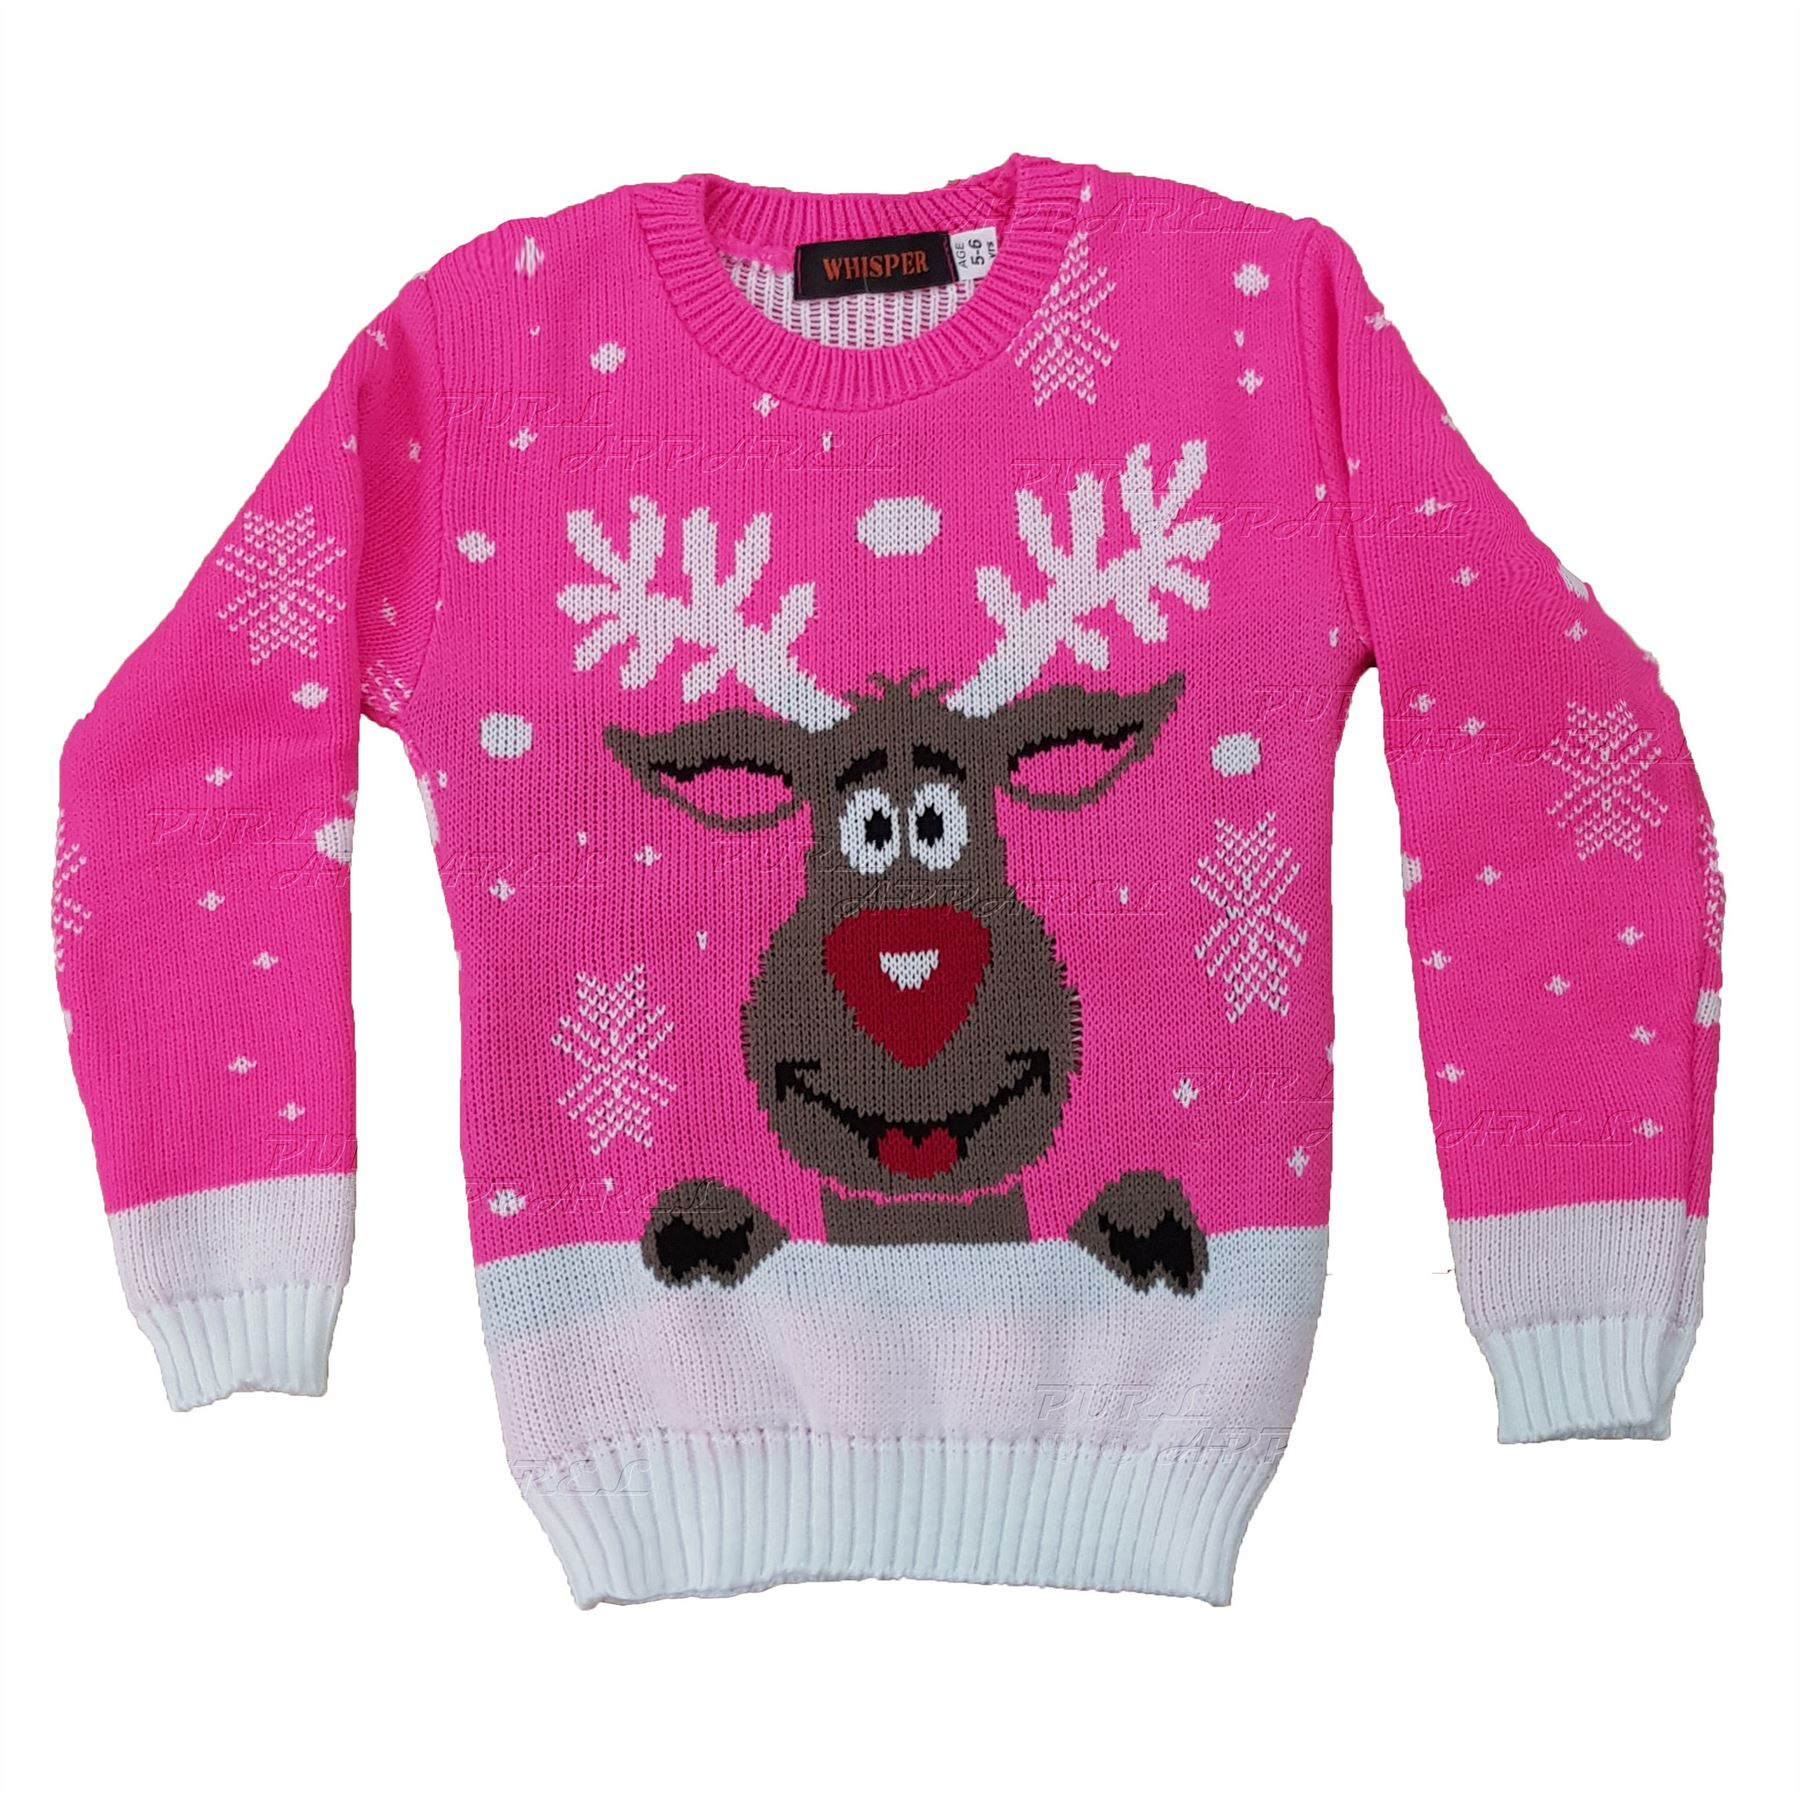 NFL Christmas Sweaters/Jumpers Everything we sell is % officially licensed, so you can be confident anything you buy will be of the highest quality and give you that warm, fuzzy feeling that only comes from supporting the creators.